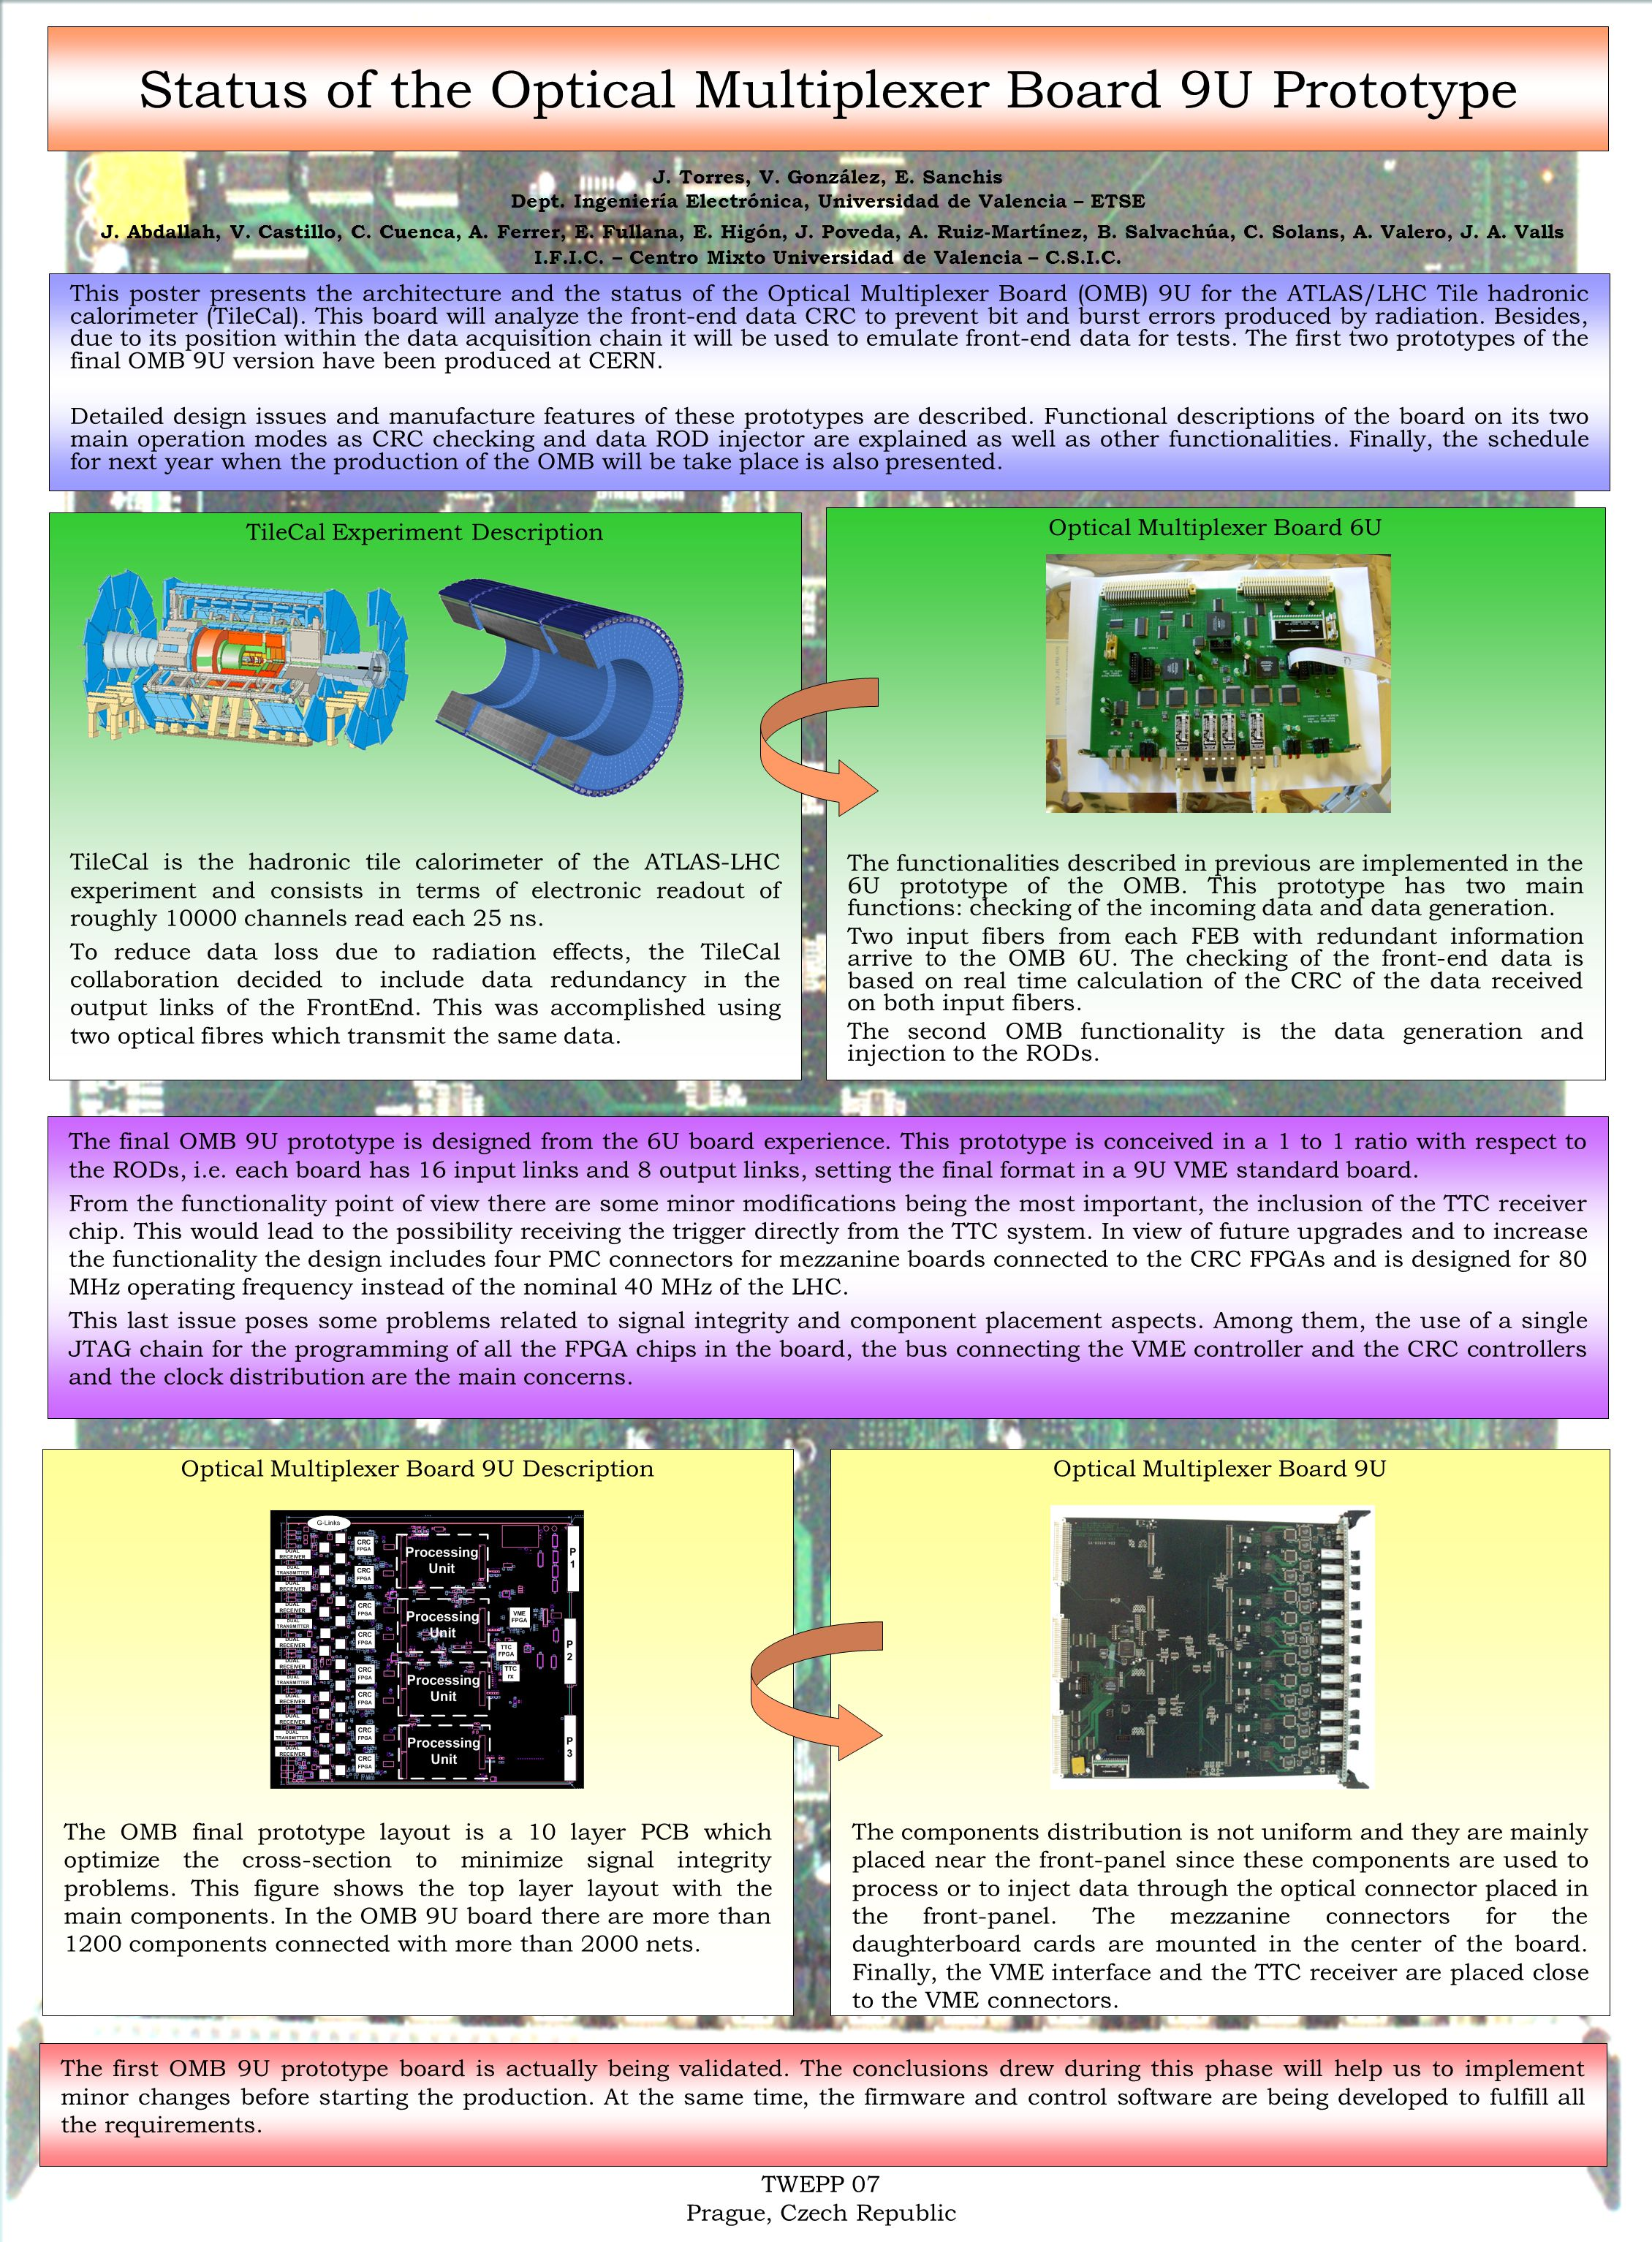 Status of the Optical Multiplexer Board 9U Prototype This poster presents the architecture and the status of the Optical Multiplexer Board (OMB) 9U for the ATLAS/LHC Tile hadronic calorimeter (TileCal).